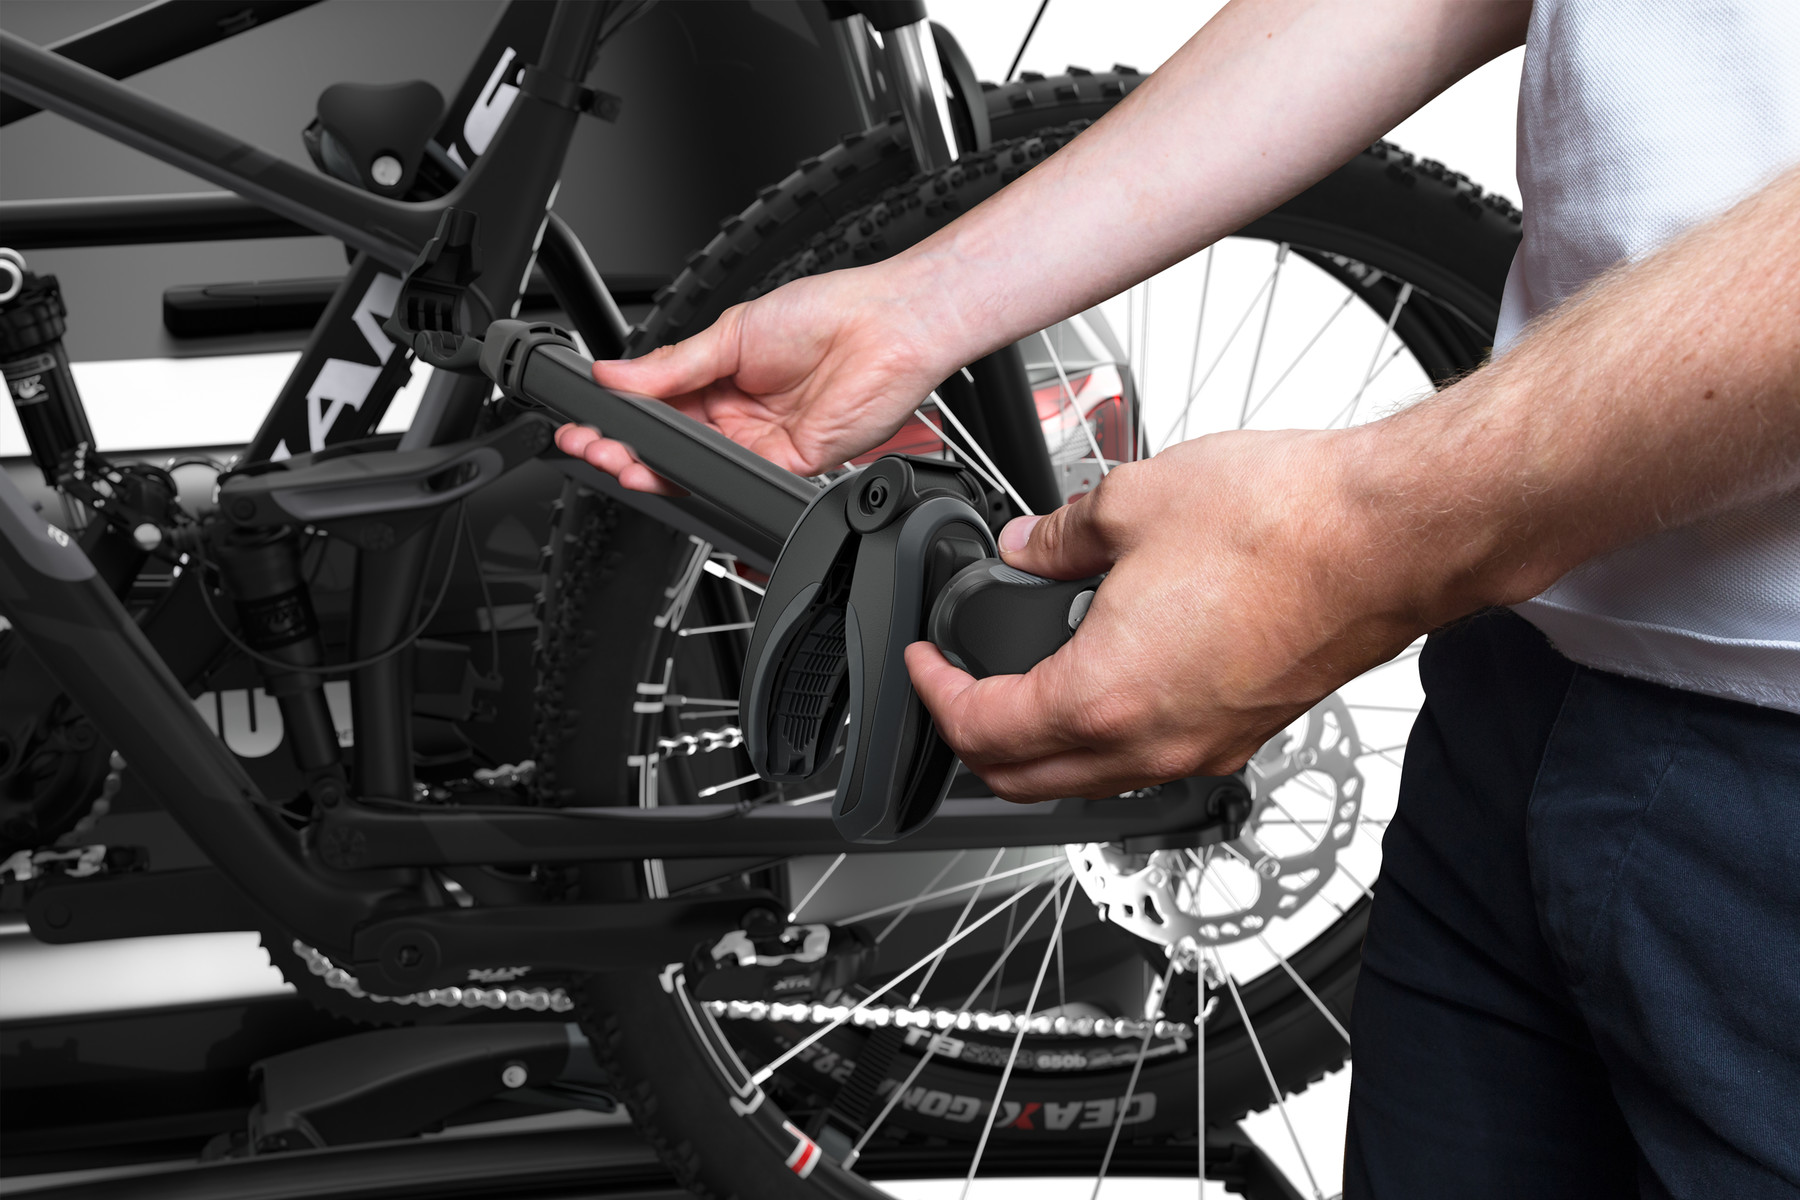 Transport wheel for VeloSpace towbar rear carrier Thule bicycle